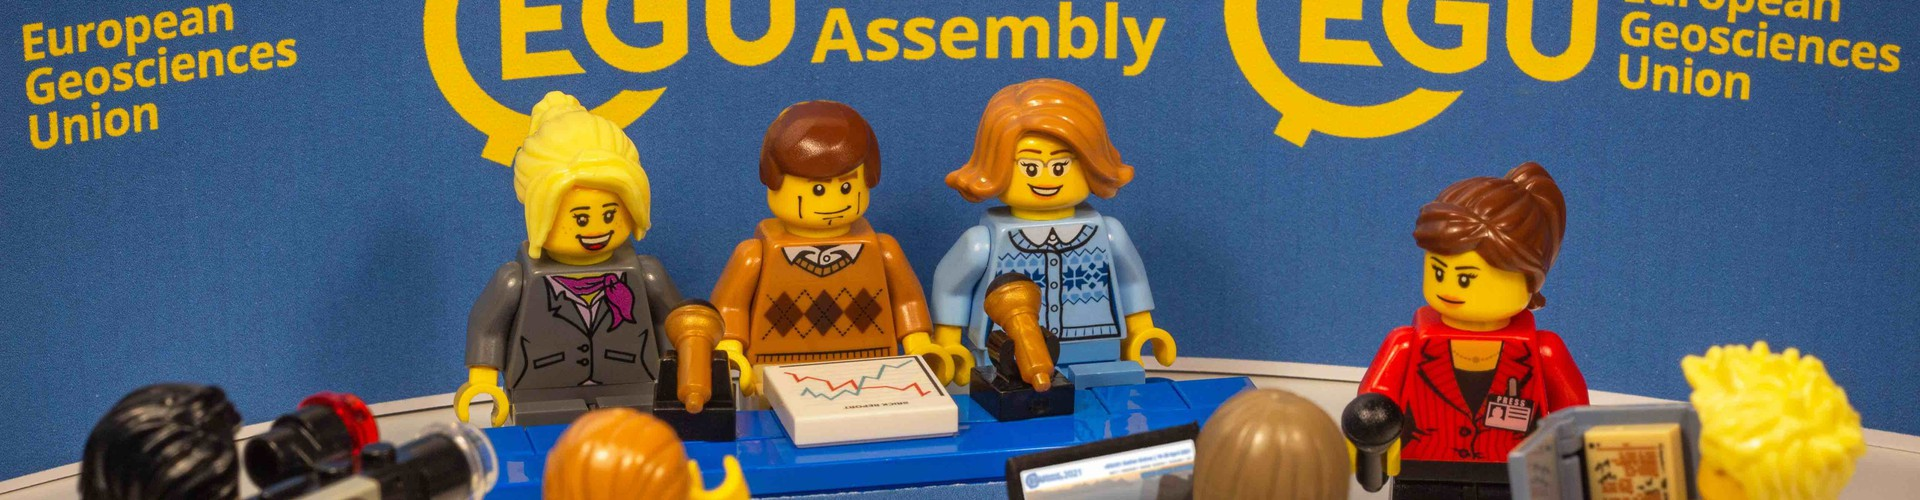 Press conference Lego image (Credit: Stacy Phillips, vEGU21 Artist in Residence @Shtacy_Phillips)